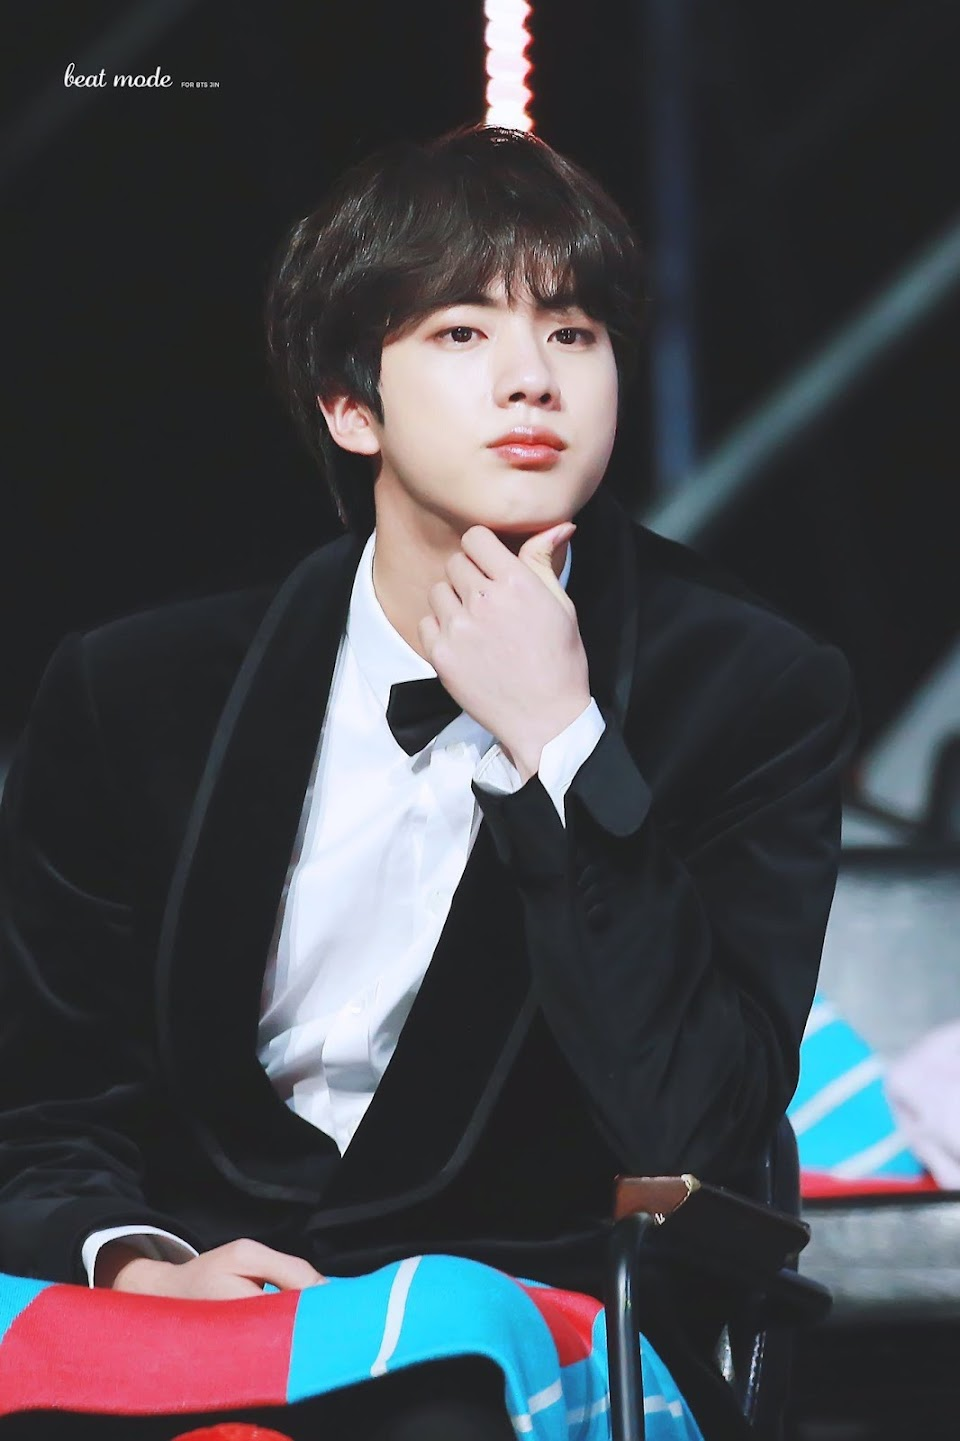 Bts S Jin Has A Cute Eating Habit That Drives Fans Extremely Hungry Koreaboo